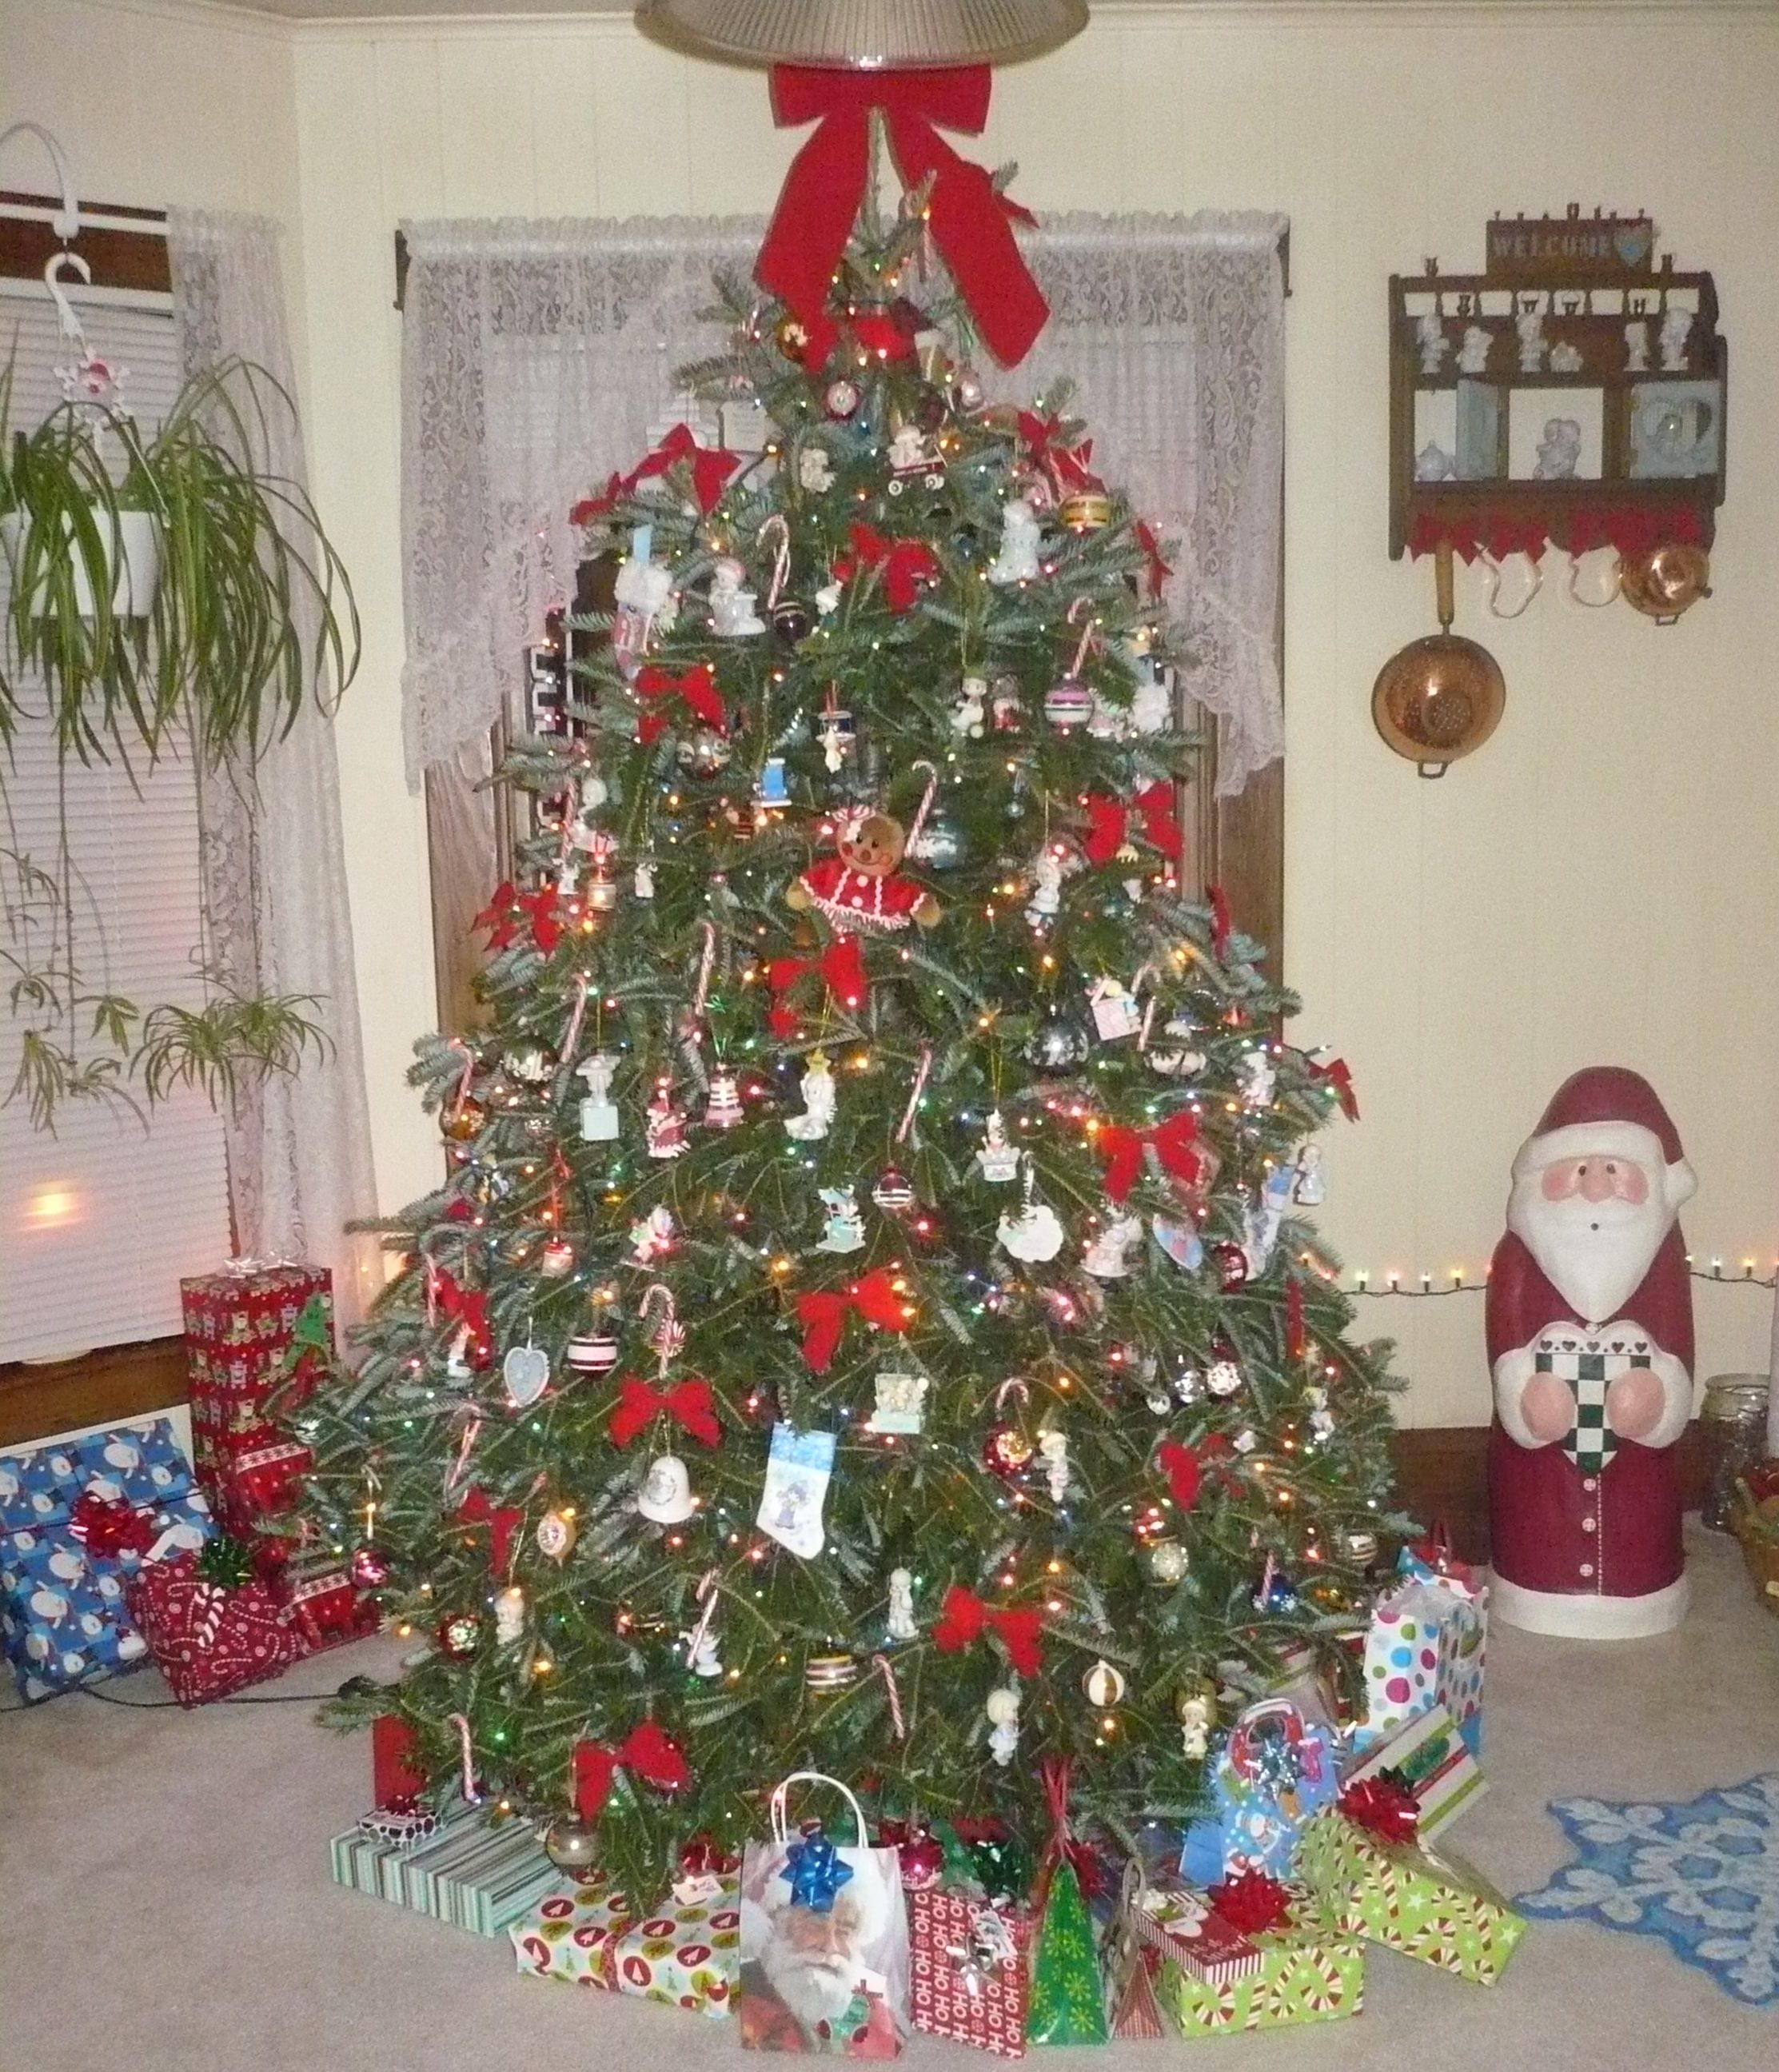 My Christmas Tree Decorated With My Antique Ornaments & My